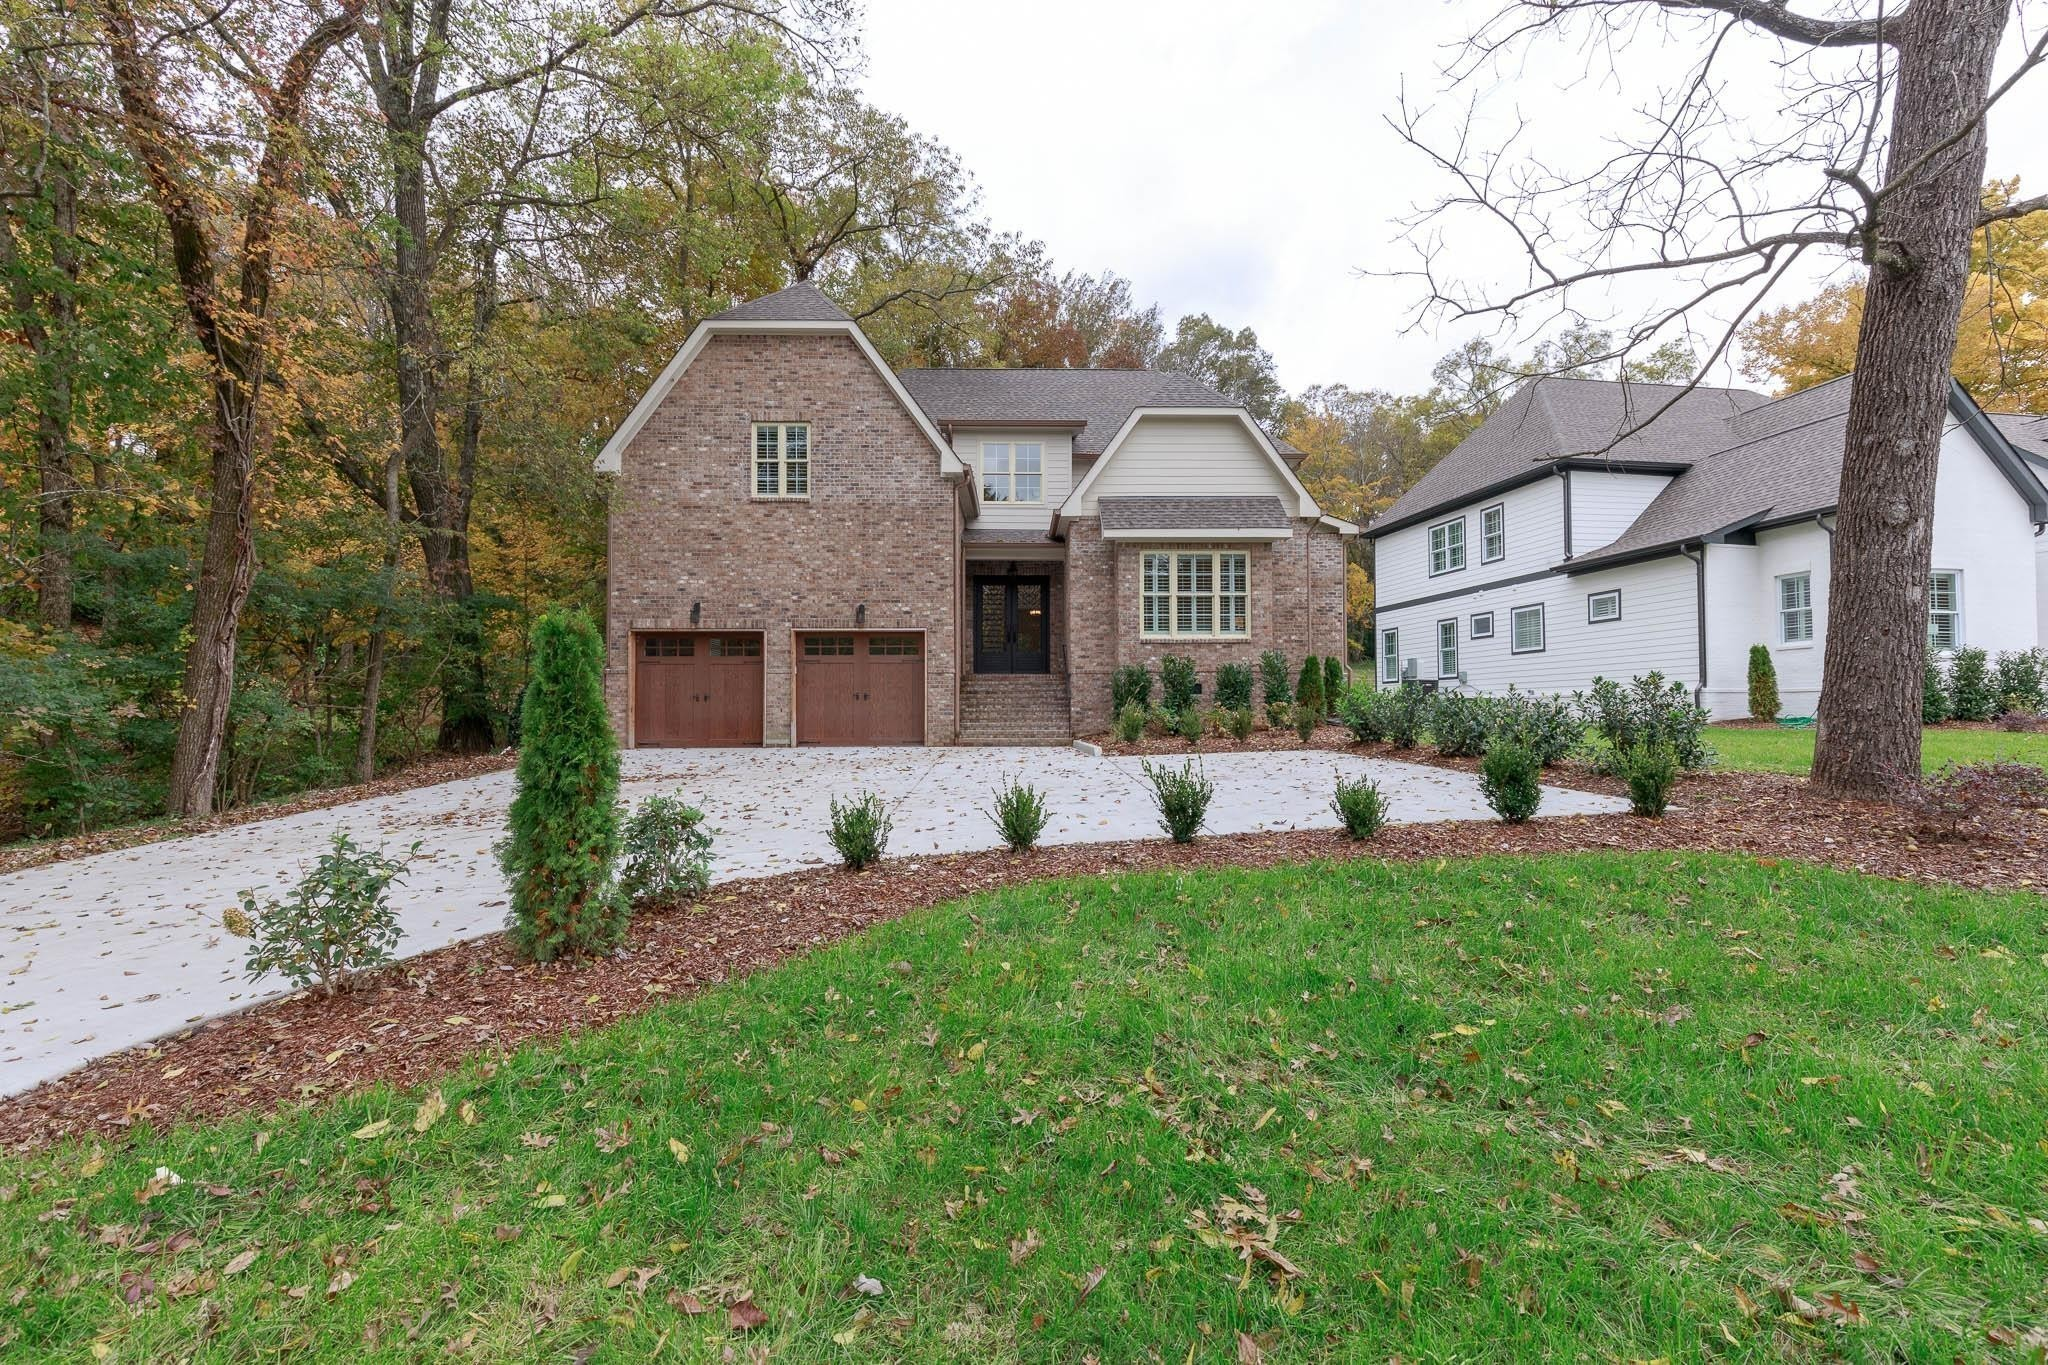 This modern home will delight you with an open floor plan and all the modern updates such as granite, hardwood, custom closets, recessed lighting and every square inch beautifully designed! Screened back porch overlooking wooded back yard!